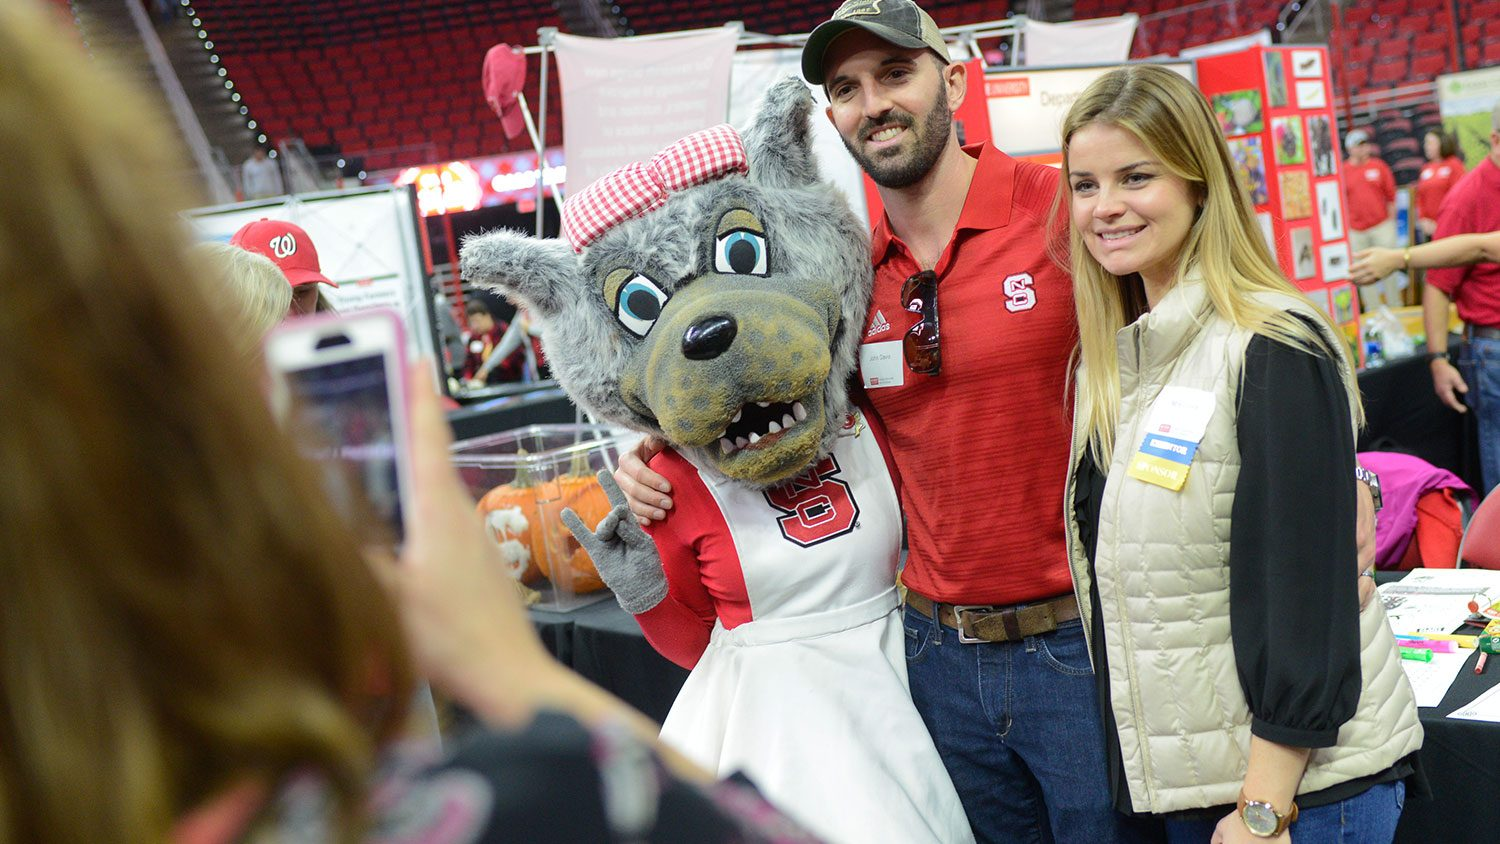 Mascot with woman and man